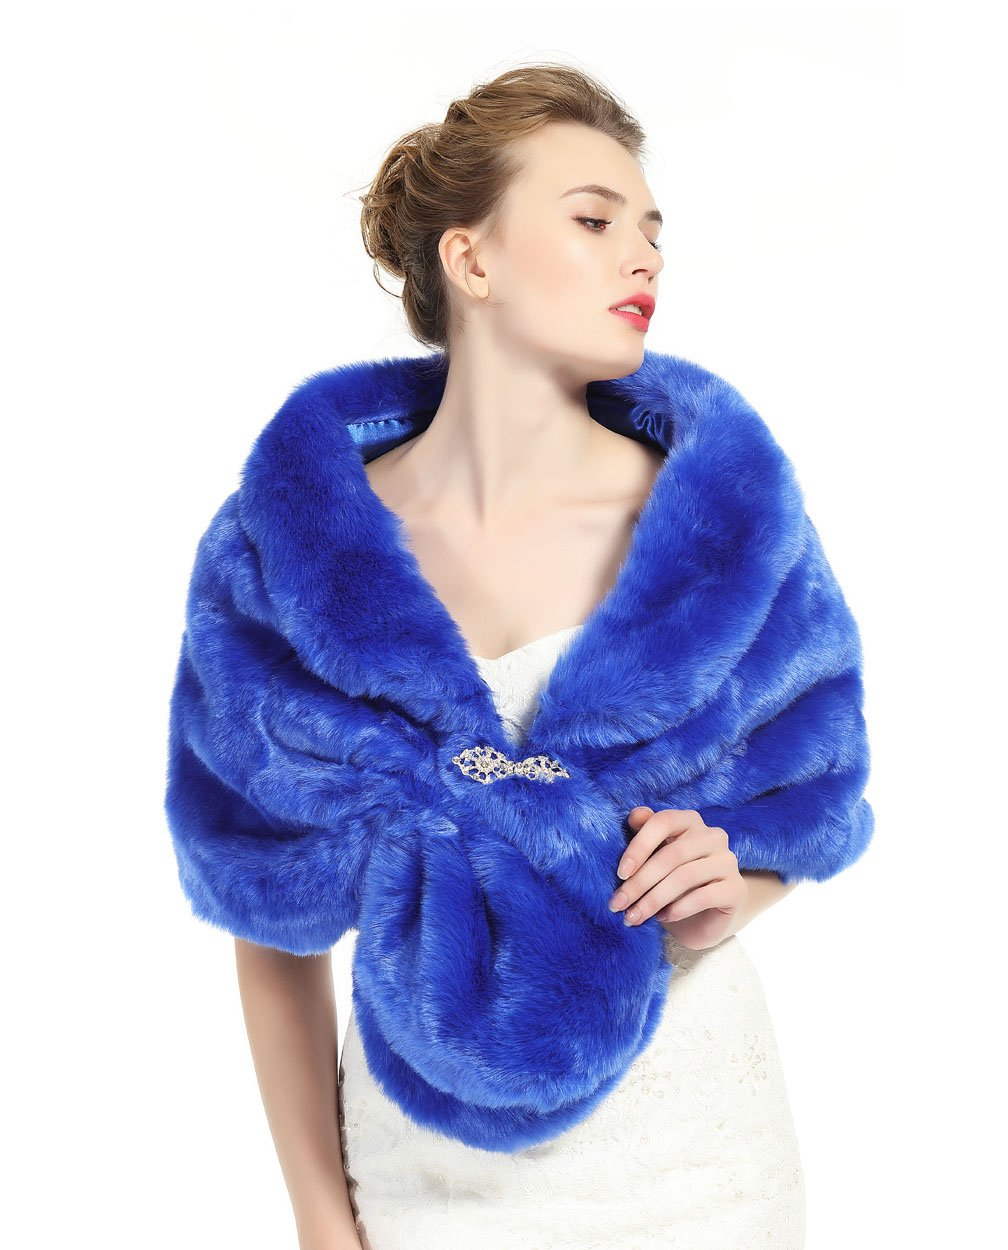 Faux Fur Shawl Wrap Stole Shrug Winter Bridal Wedding Cover Up Royal Blue Size M by MISSYDRESS (Image #1)